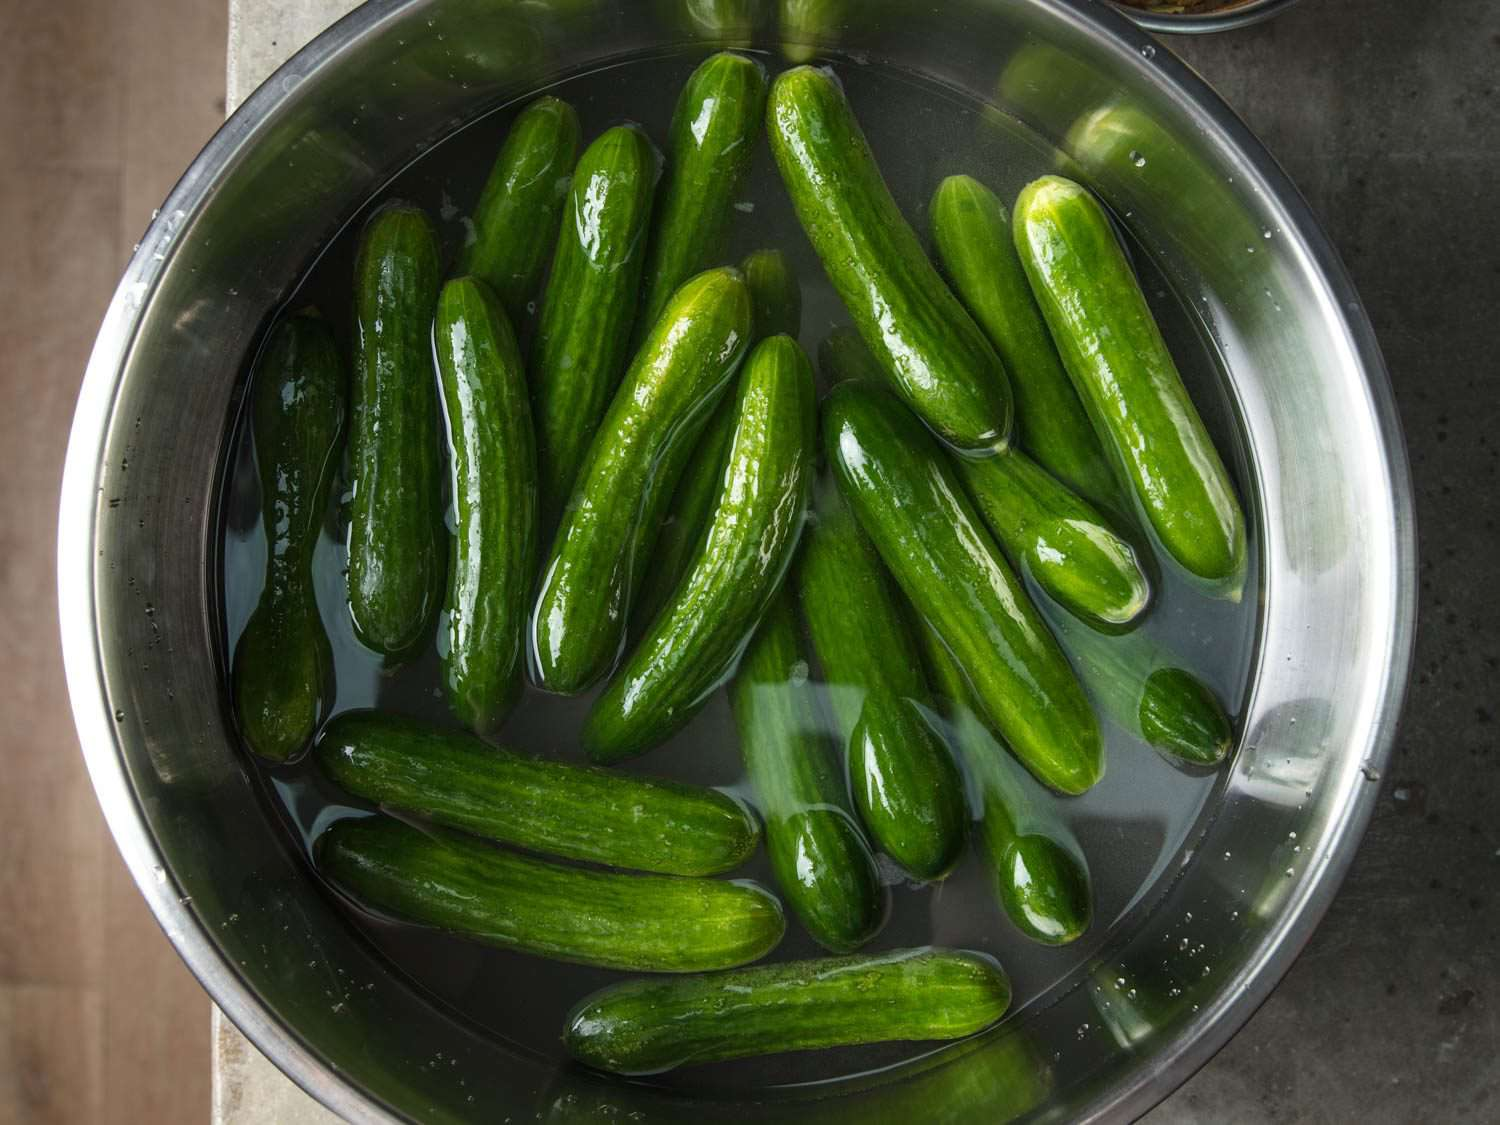 Overhead view of bowl with small cucumbers soaking in salt water as a preparatory step before pickling